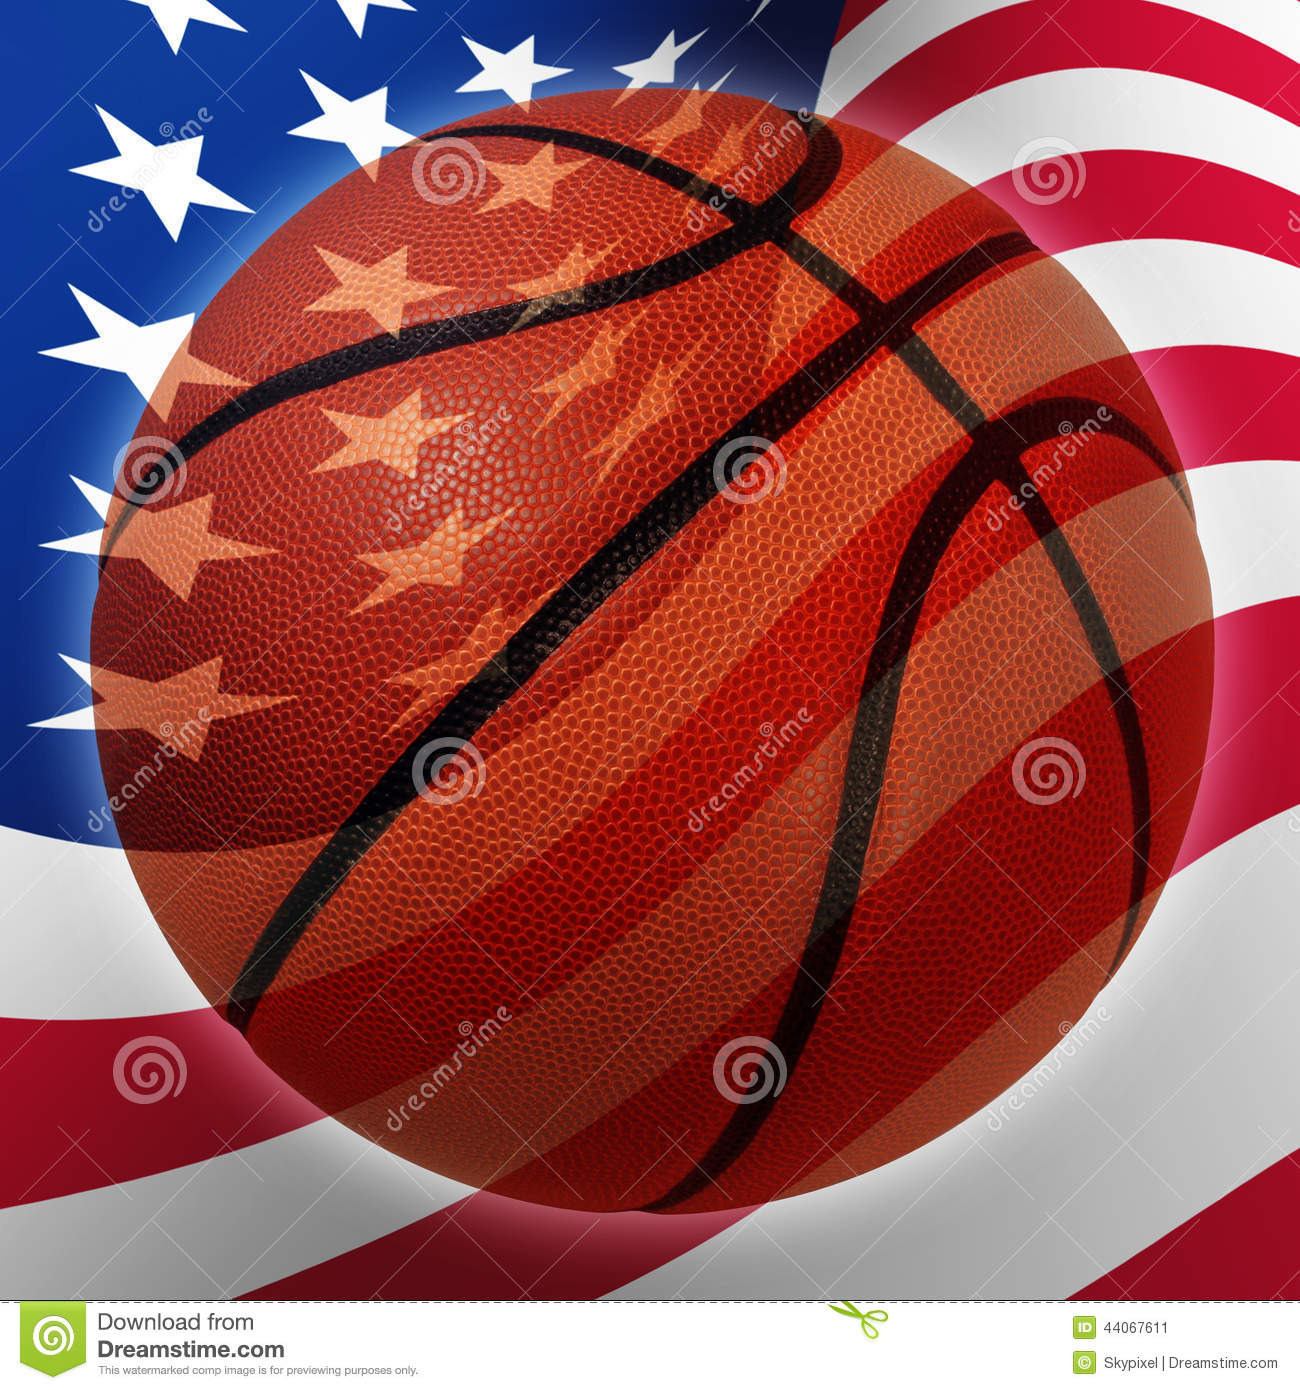 the nature of basketball in united states This allows us to separately study the timing of 2pt and 3pt shots, and examine  how the ratio of 3pt to 2pt shots depends on the previous fgas.